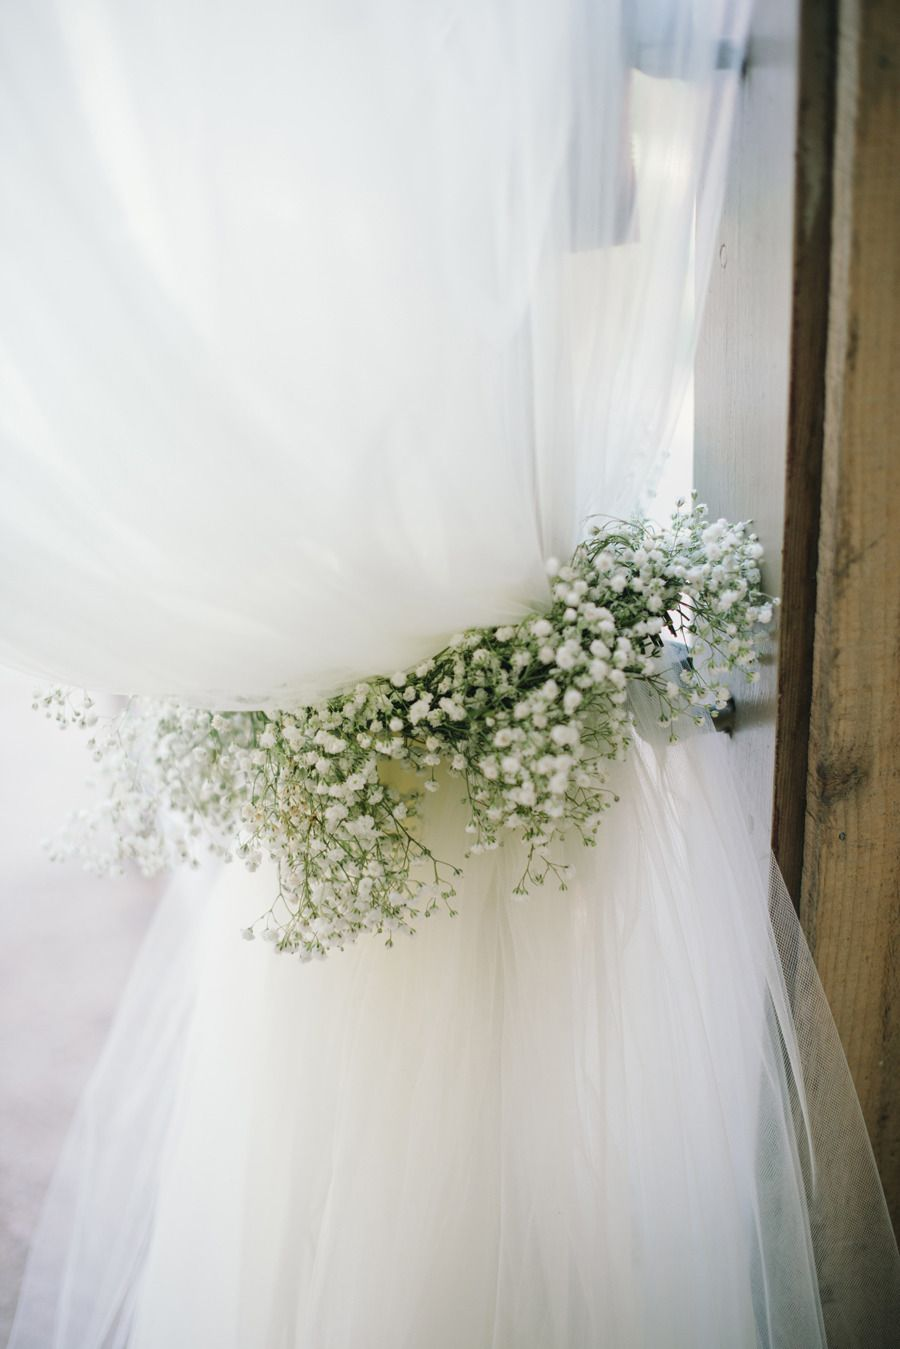 Baby's breath used to hold the curtains at the sides